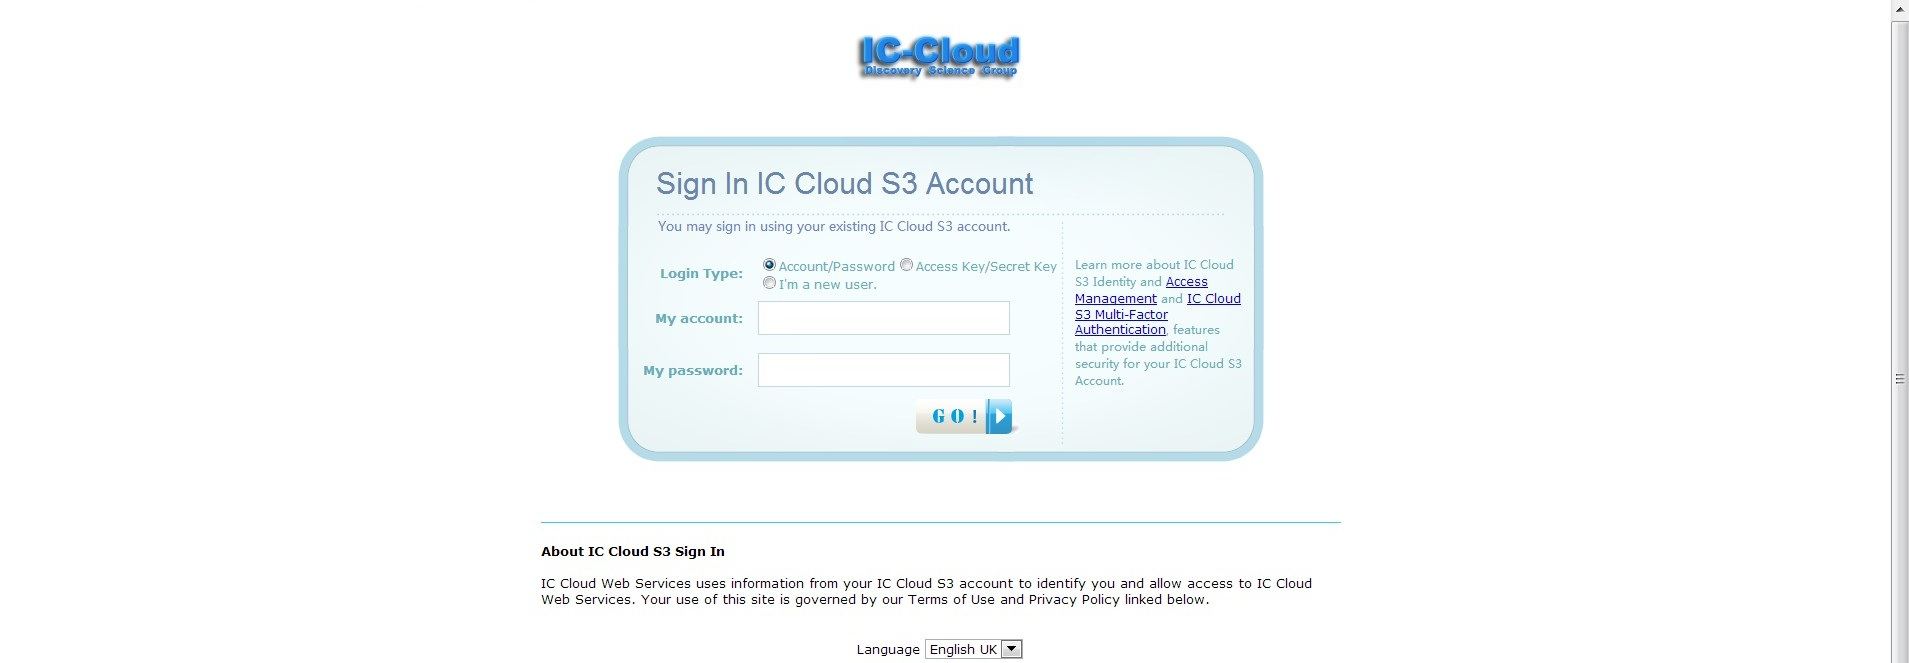 CACSS Cloud Storage System Web Login Portal